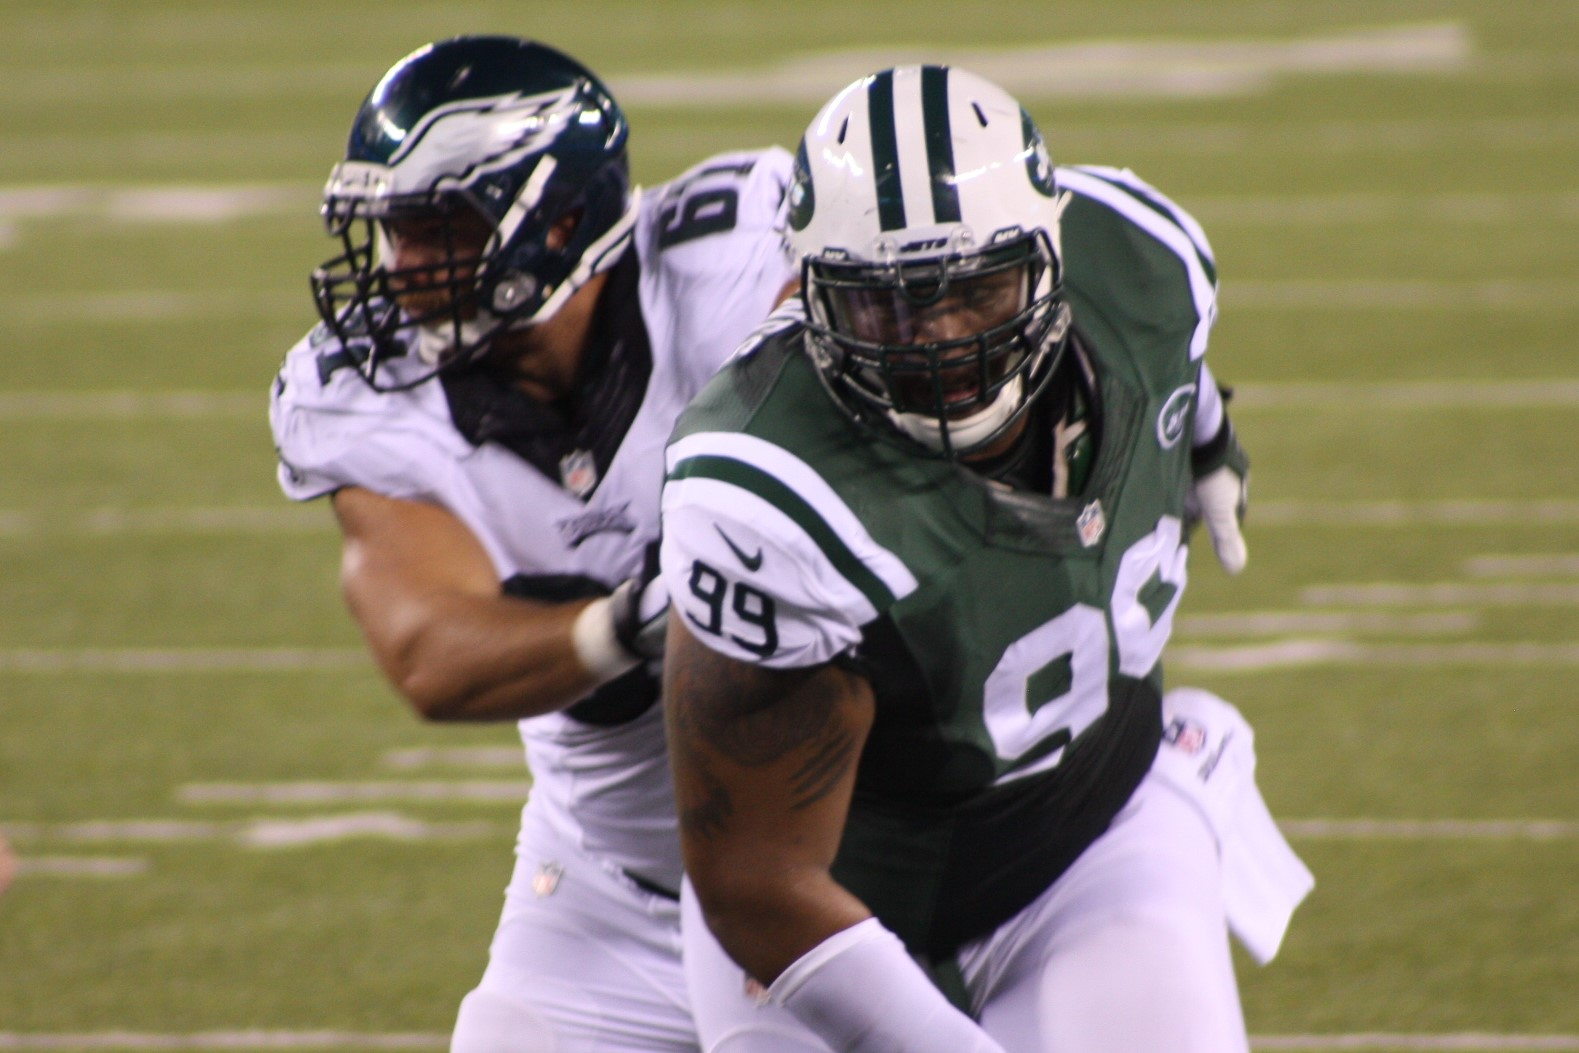 Bills Pluck TJ Barnes, Jets Sign Linebacker Julian Stanford to Practice Squad